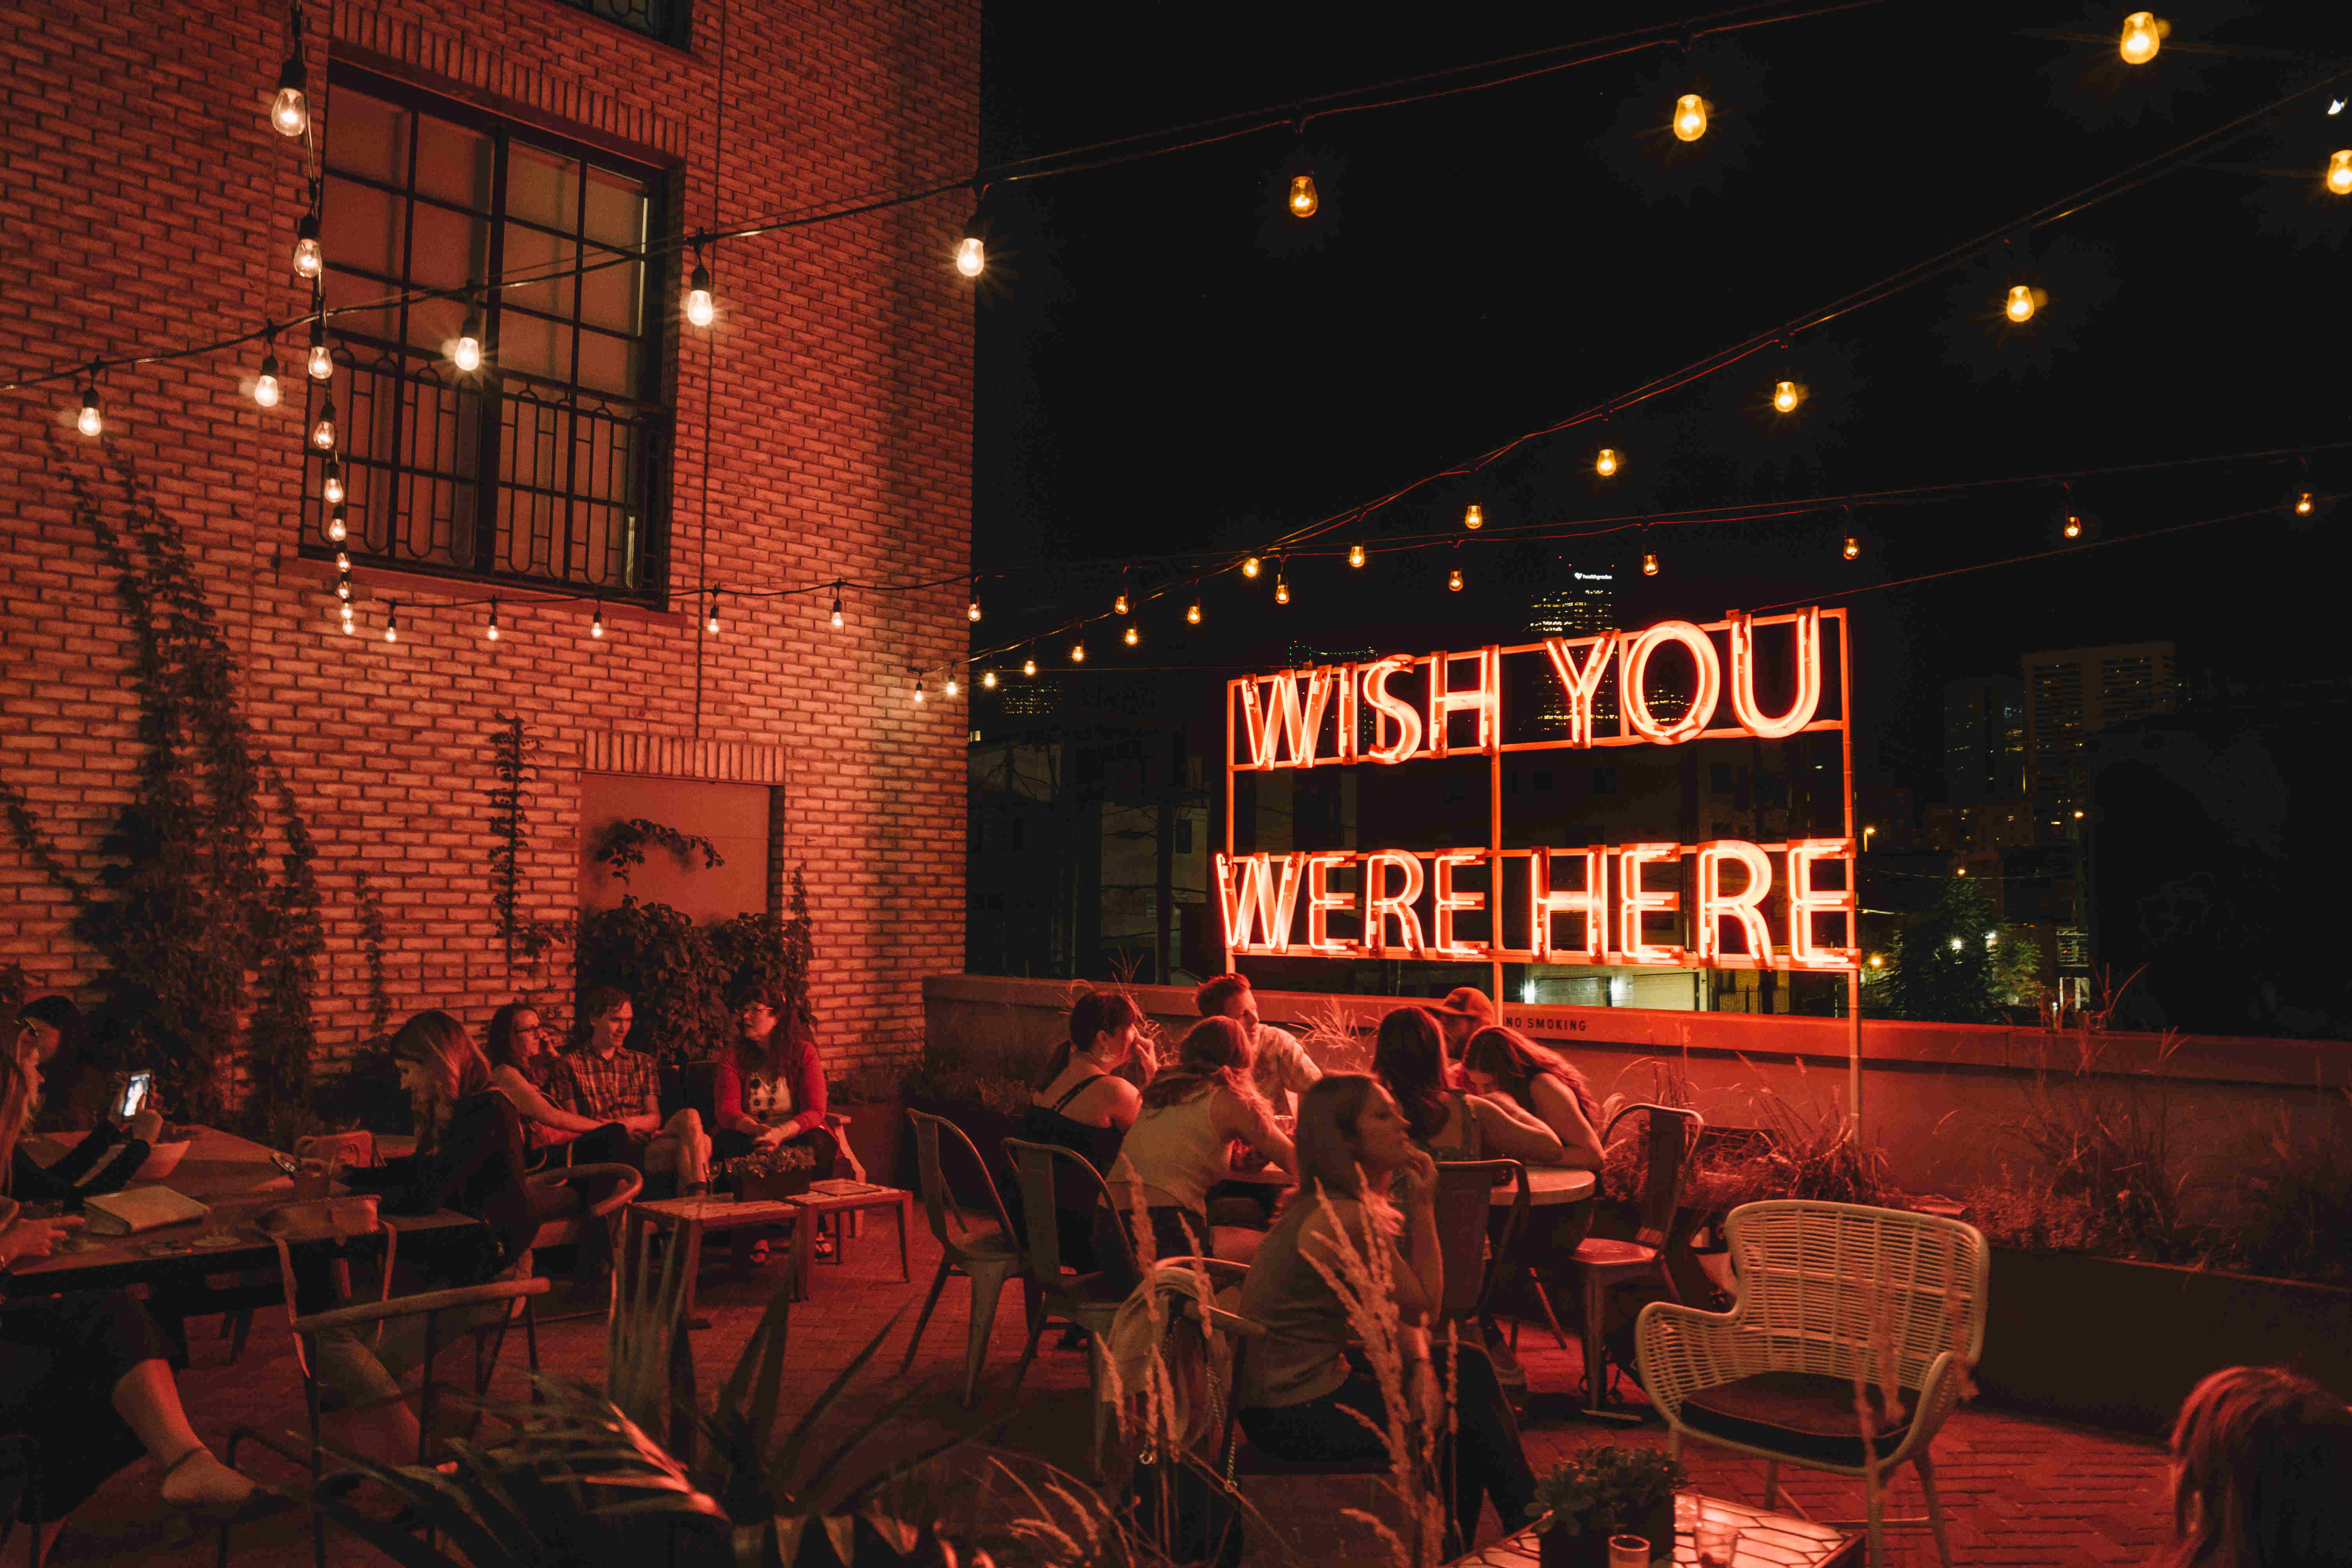 Perspective Shot for the Garden Terrace in the Ramble Hotel. The bar is full of people and there is a red shining billboard showing the message 'Wish you were here'